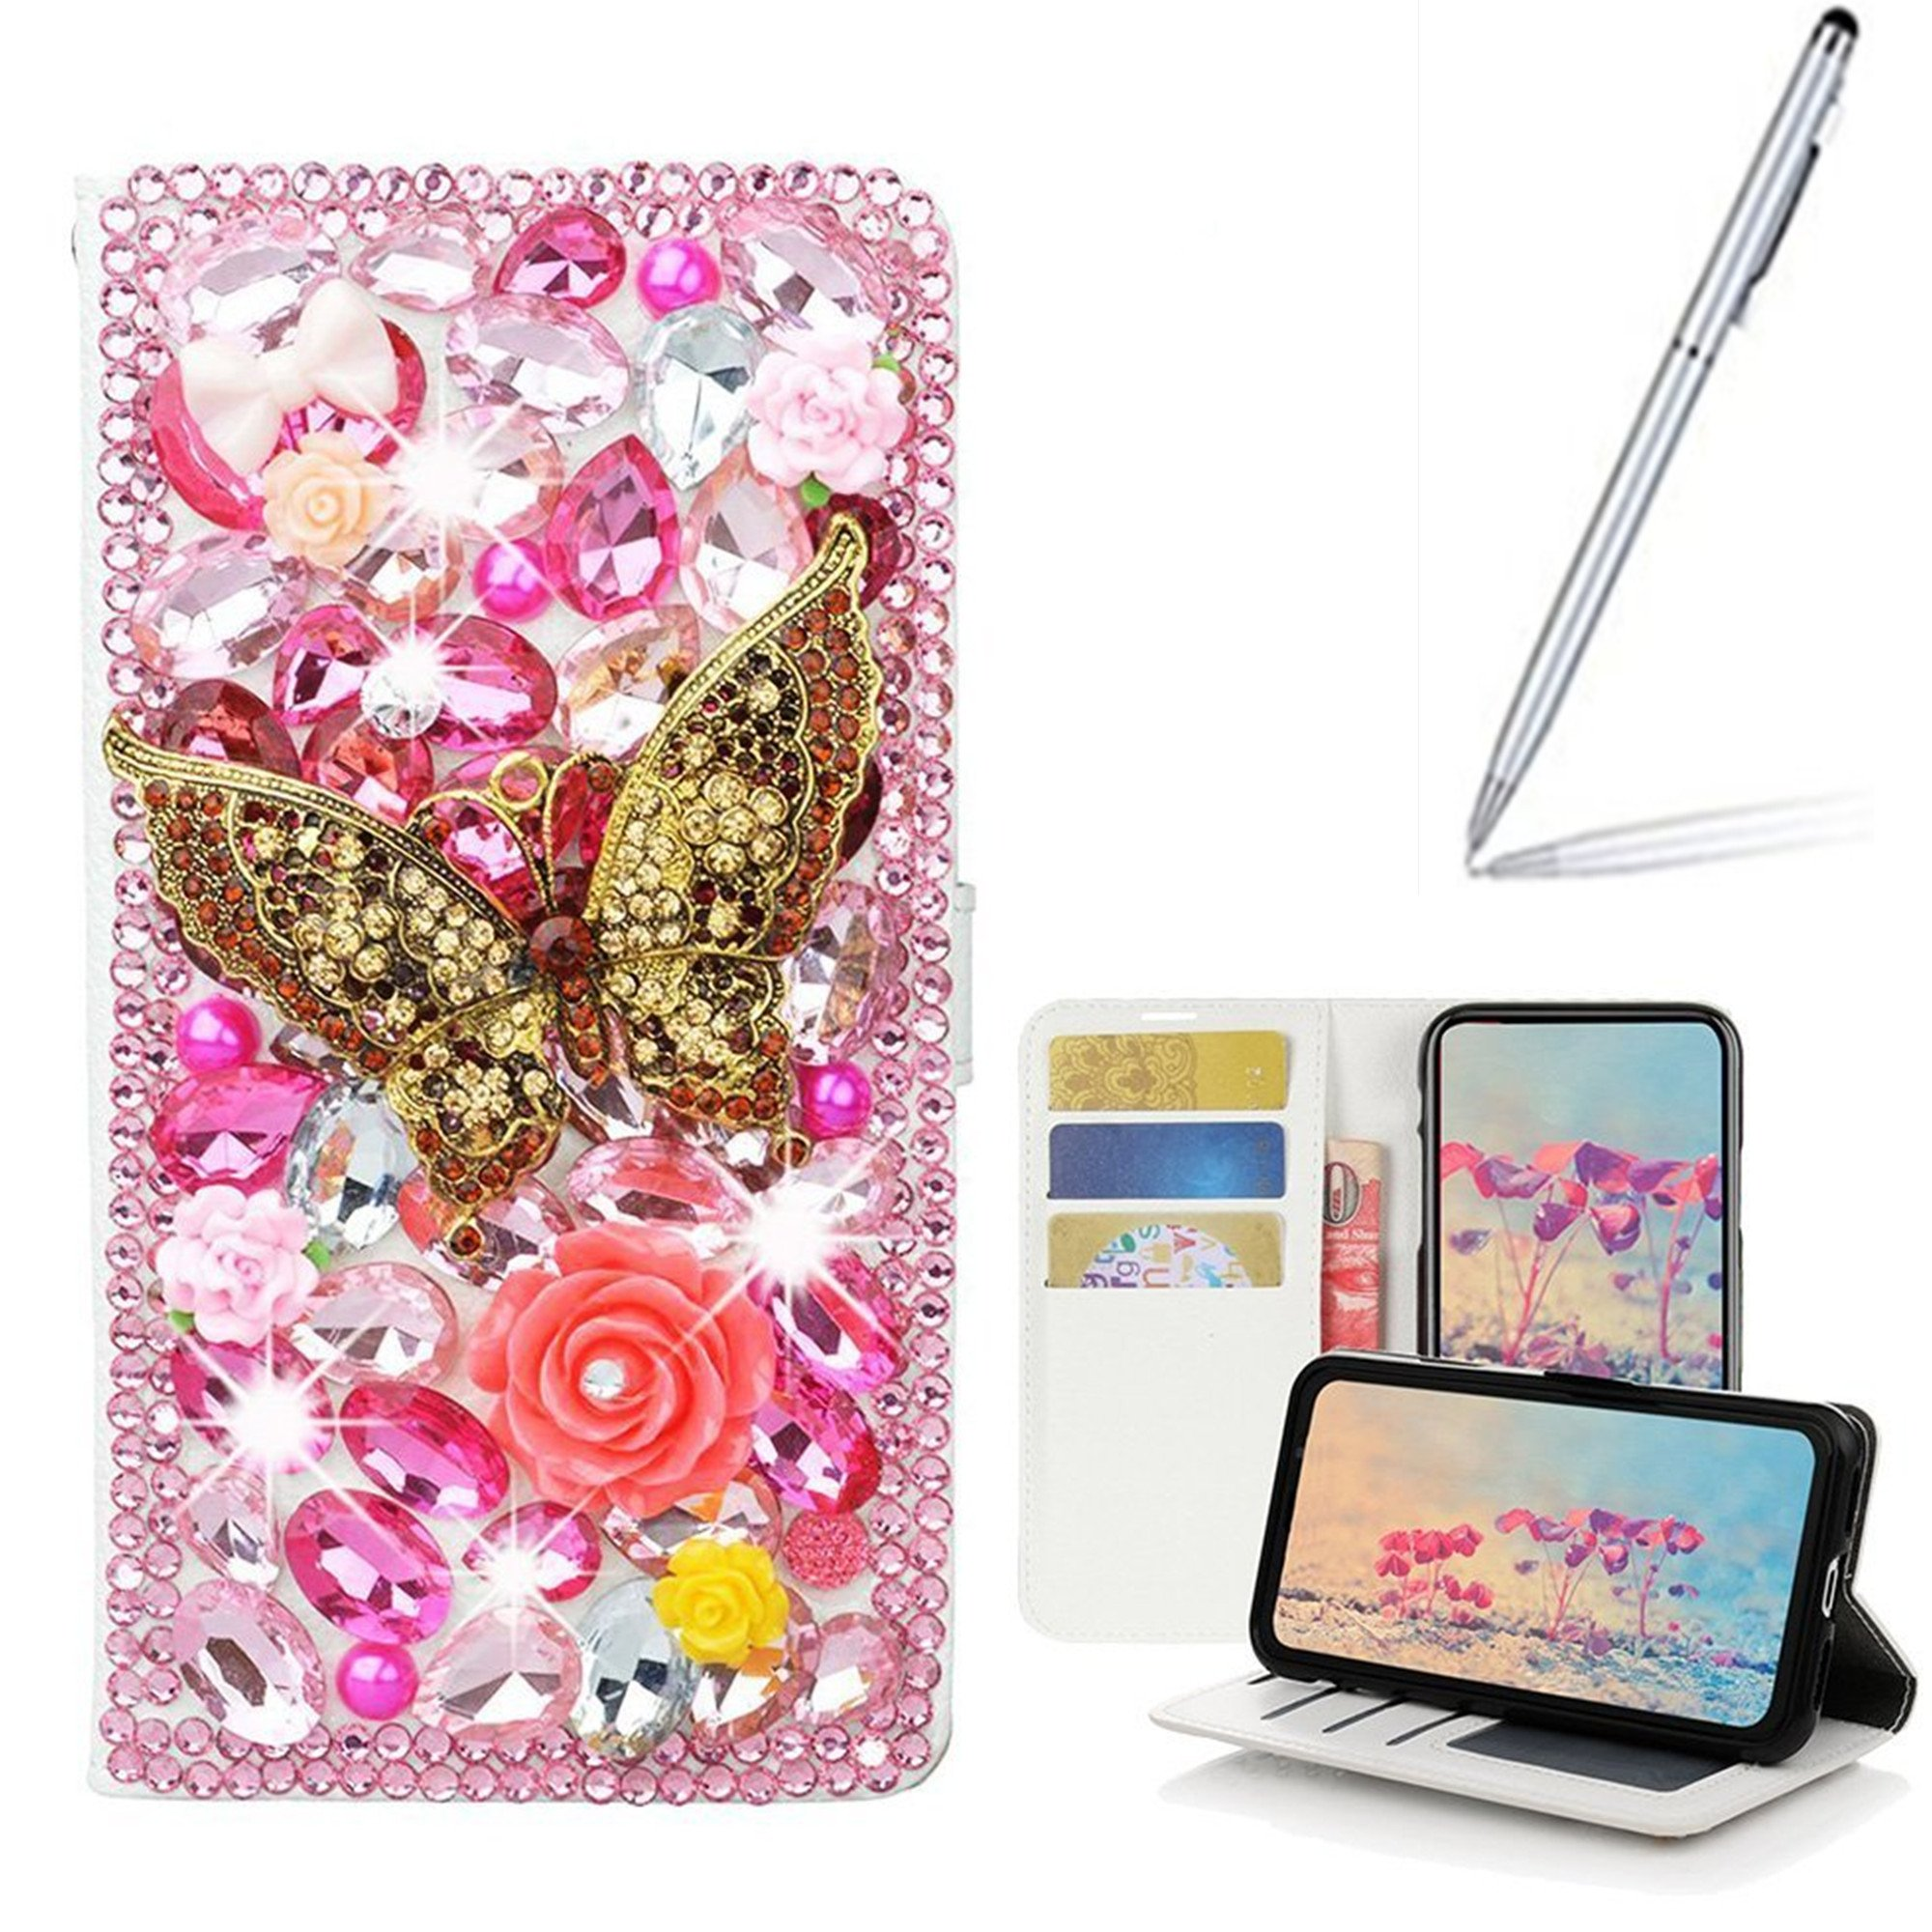 Yaheeda LG Stylo 3 Case with 2 in 1 Stylus and Ballpoint Pen, [Stand Feature] Butterfly Crystal Wallet Case Premium [Bling Luxury] PU Leather Flip Cover [Card Slots] For LG Stylo 3 Plus